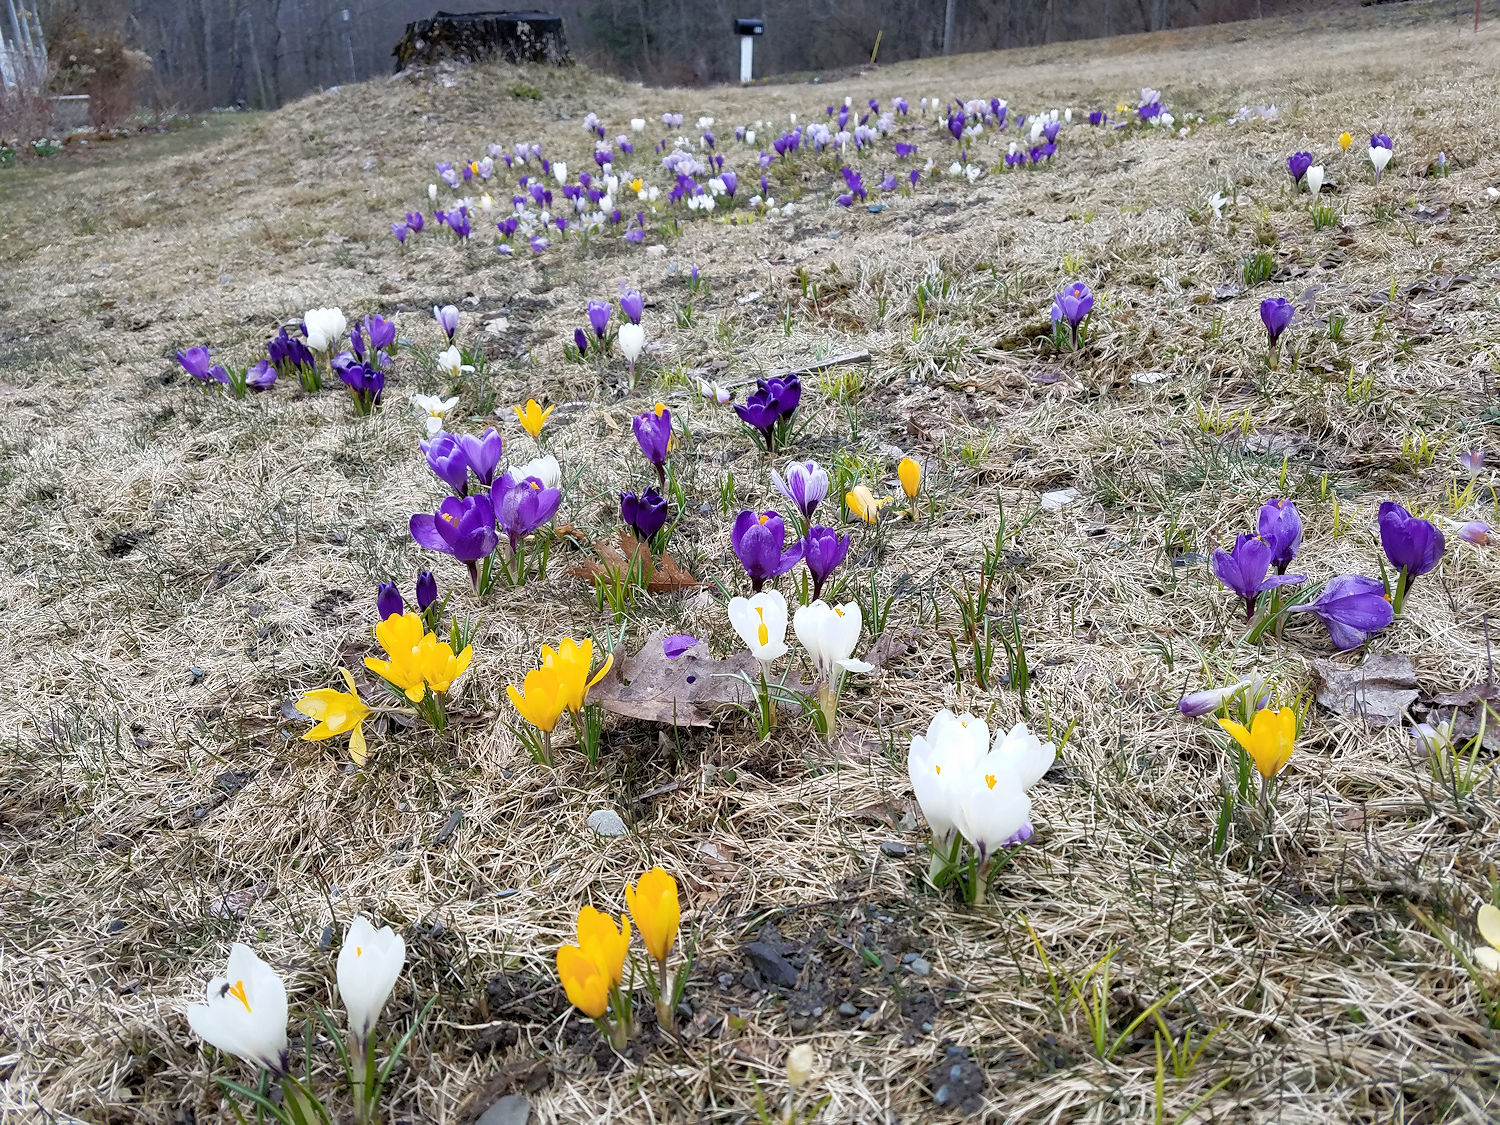 Crocuses Plant The Earliest Flowers Where The Snow Melts First